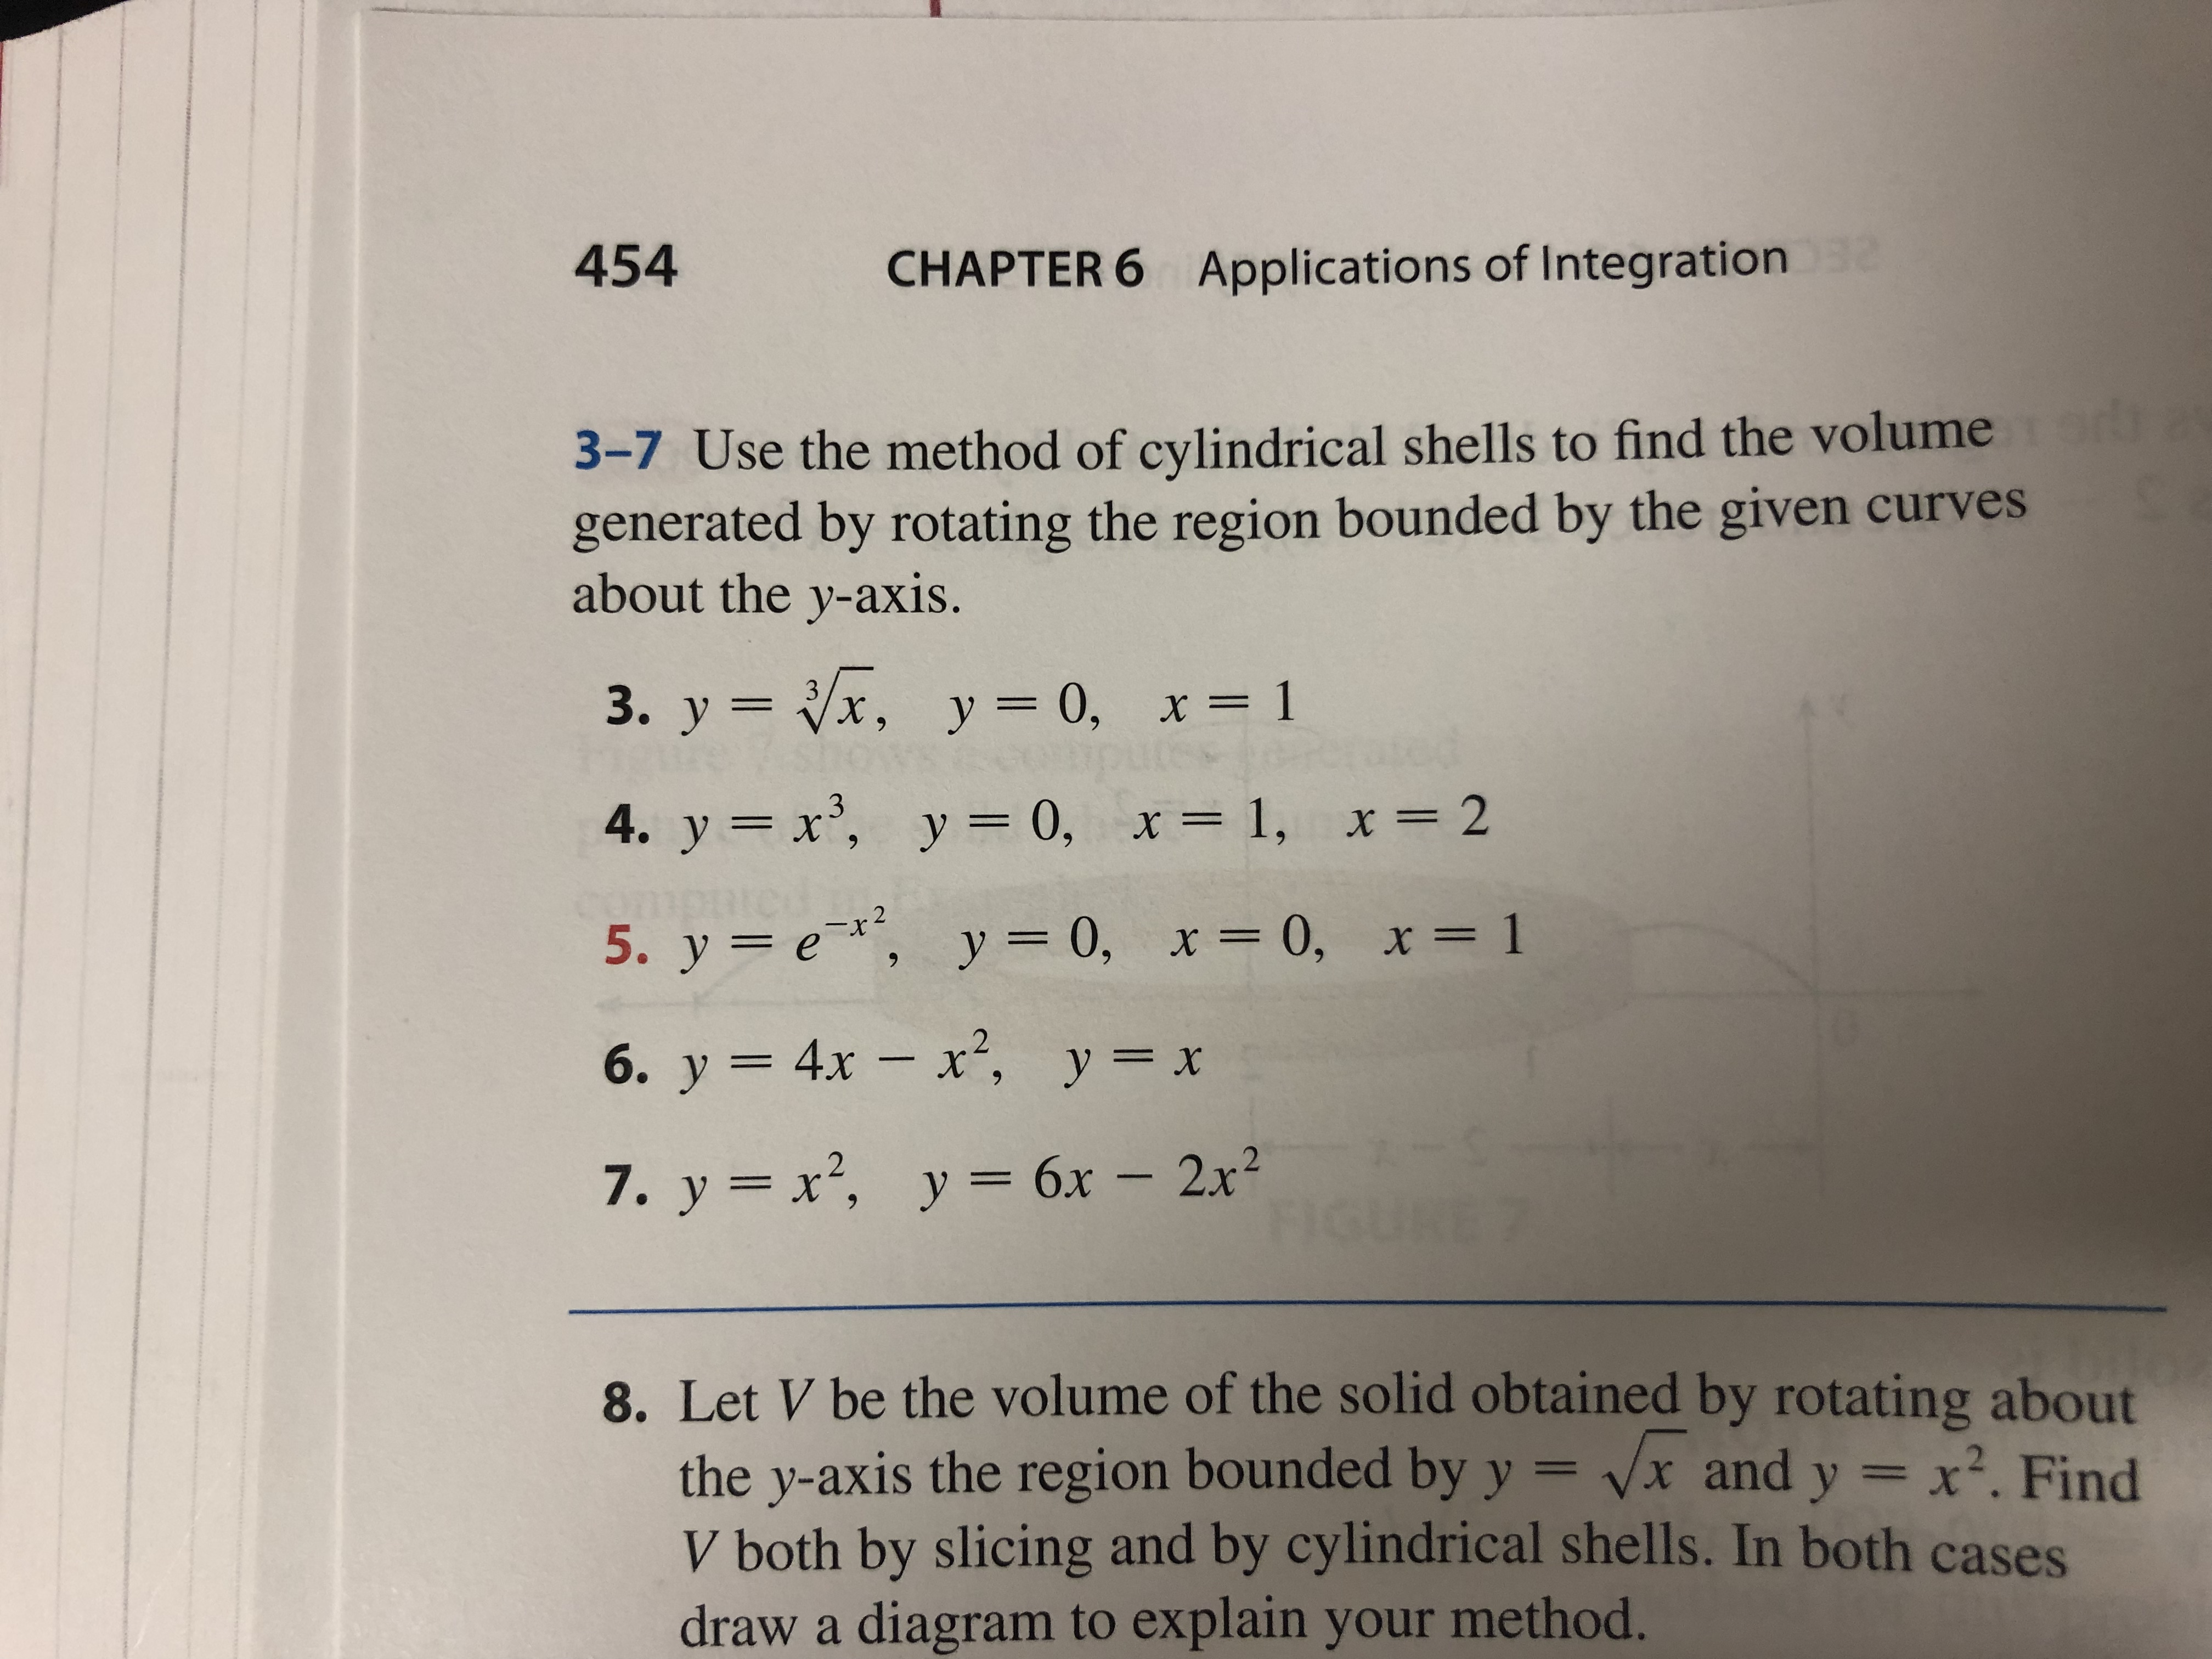 454 CHAPTER 6 Applications of Integration 2 3-7 Use the method of cylindrical shells to find the volume generated by rotating the region bounded by the given curves about the y-axis. 3. y x, y = 0, x= 1 4. y x, y = 0, x= 1, x = 2 2 5. у %3D е*, у 3D0, х3D 0, х%3D 1 6. у 3 4х — х*, у%3D х 7. y x2, y 6x - 2x2 8. Let V be the volume of the solid obtained by rotating about the y-axis the region bounded by y = vx and y x2. Find V both by slicing and by cylindrical shells. In both cases draw a diagram to explain your method.